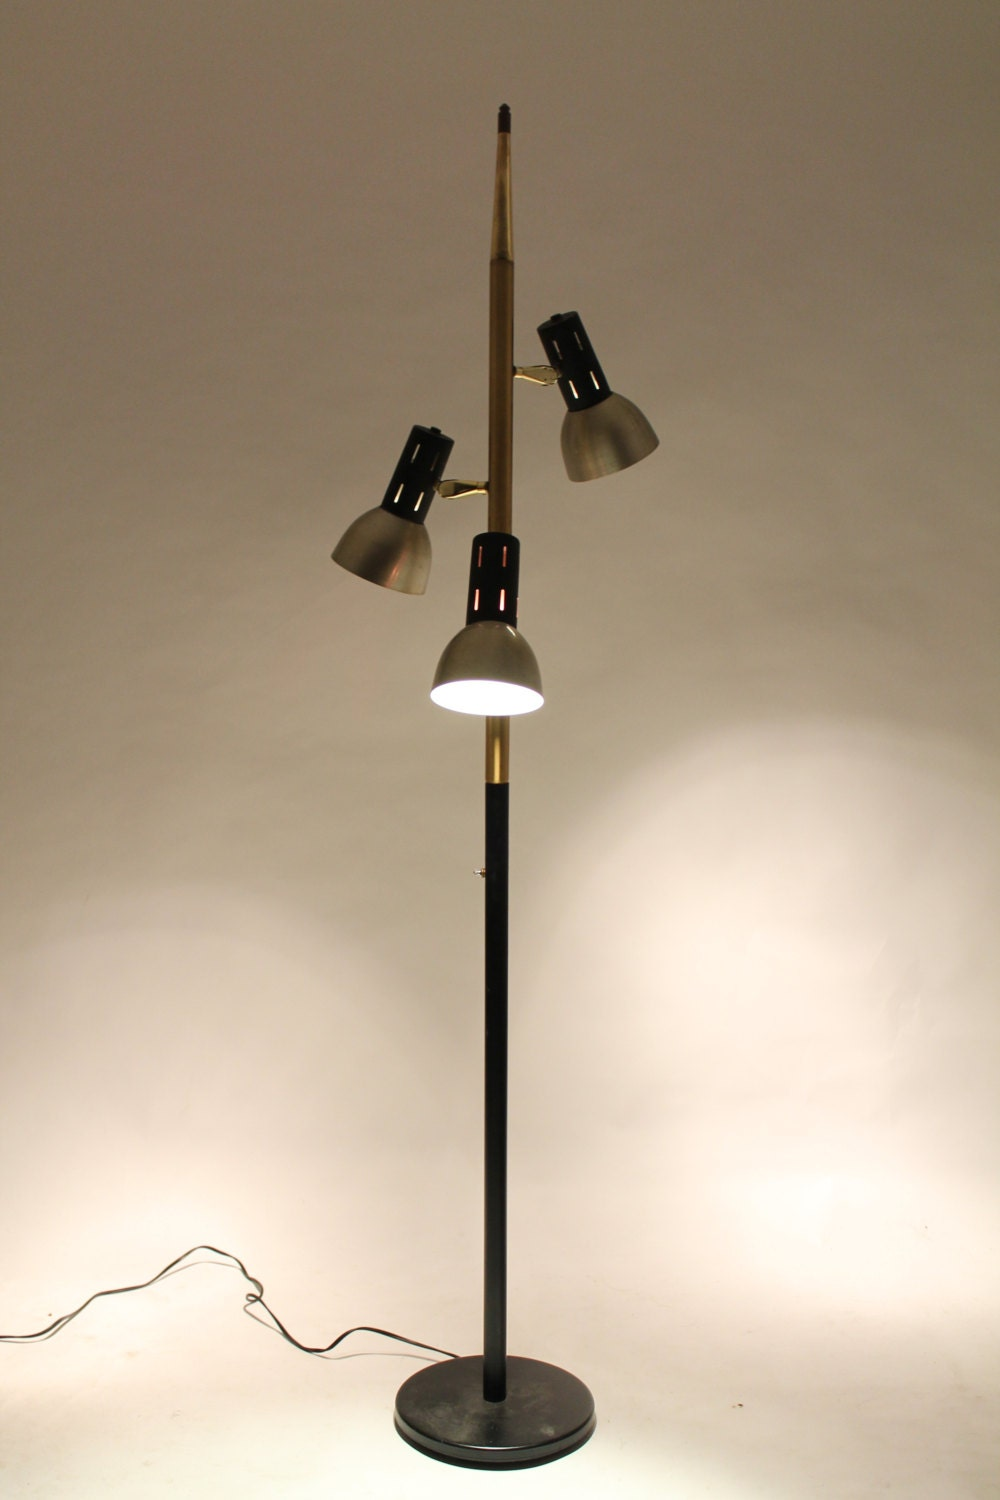 on hold 3 heads floor lamp 72 inches high mid century. Black Bedroom Furniture Sets. Home Design Ideas